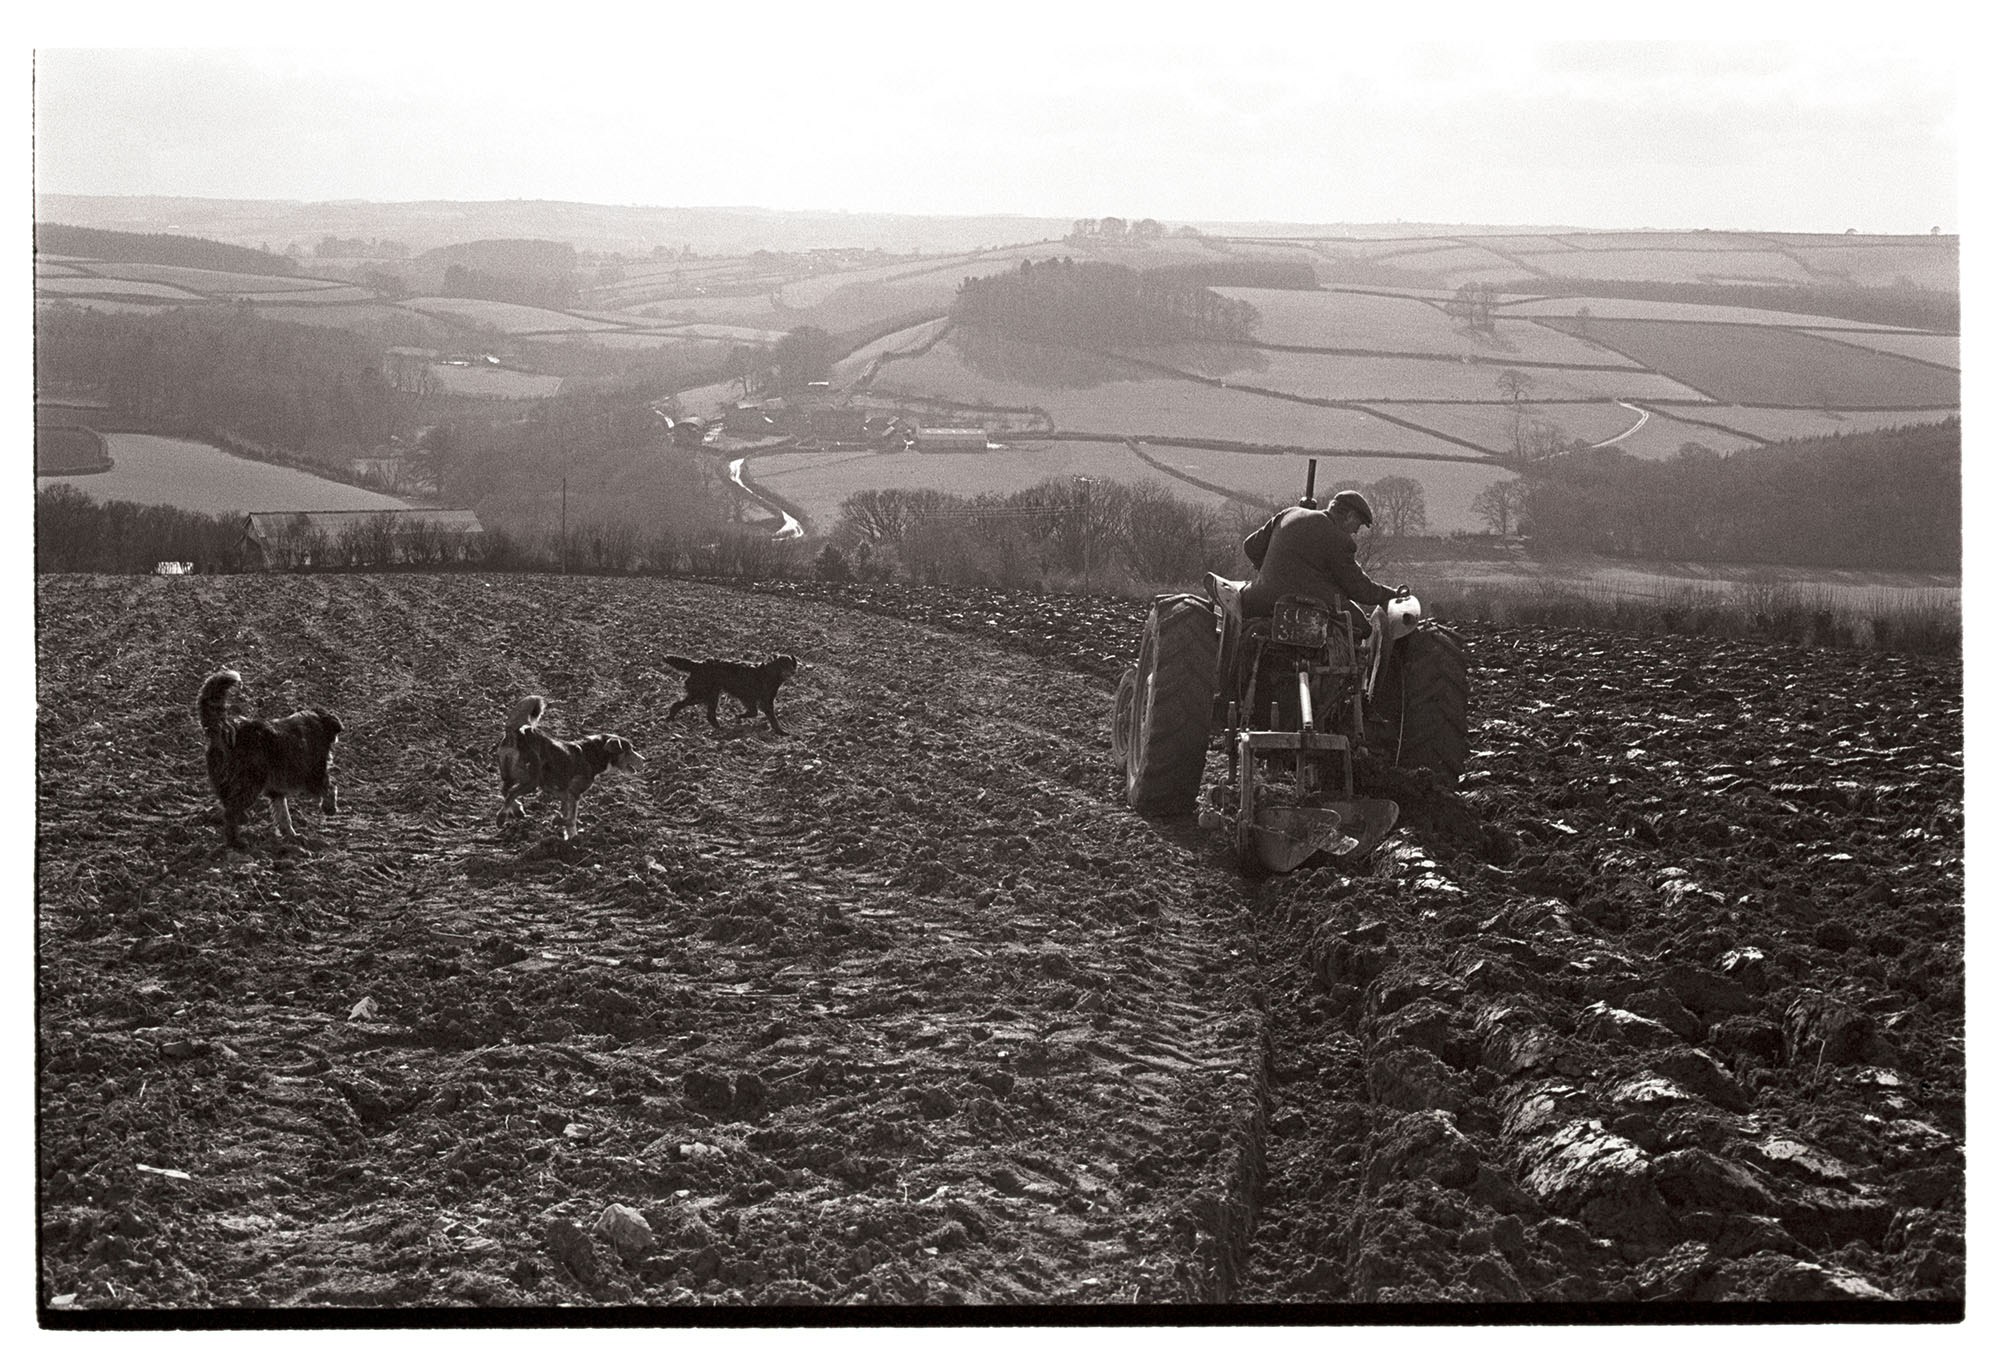 George Ayre ploughing, Ahswell, Dolton, 14 April 1979